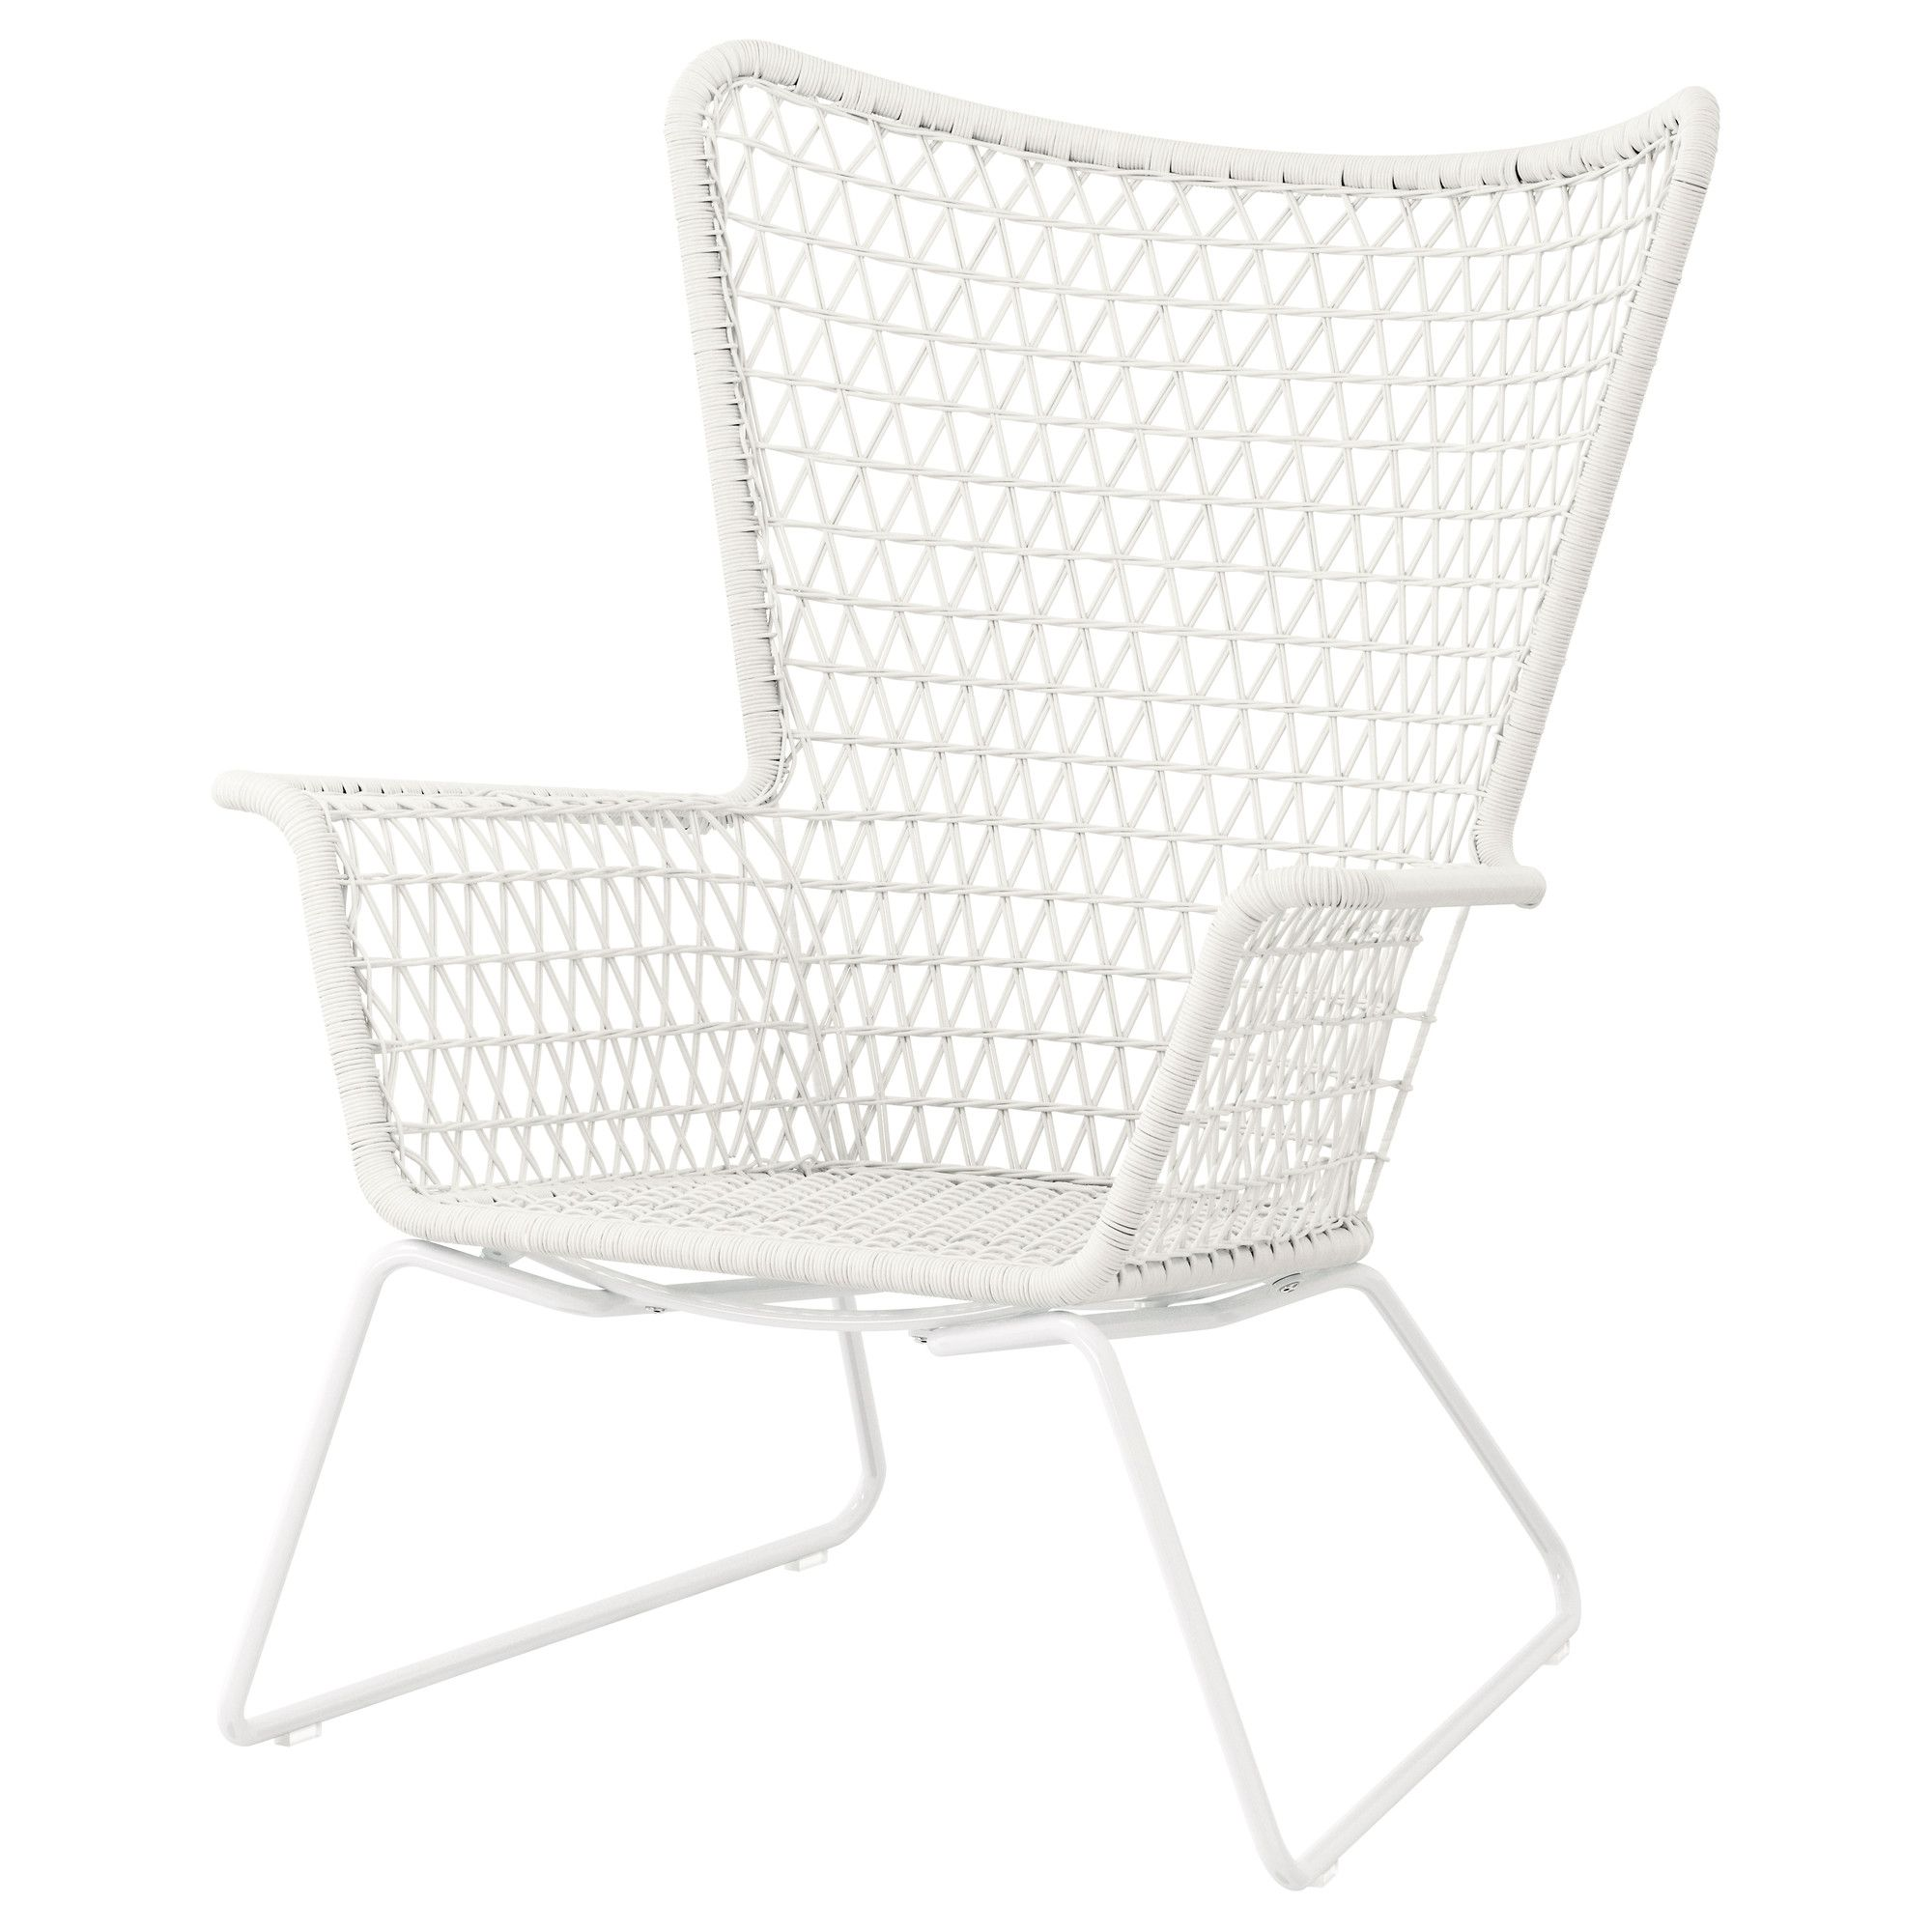 Hogsten Armchair Outdoor White Ca Ikea Ikea Outdoor Ikea Garden Furniture Ikea Armchair